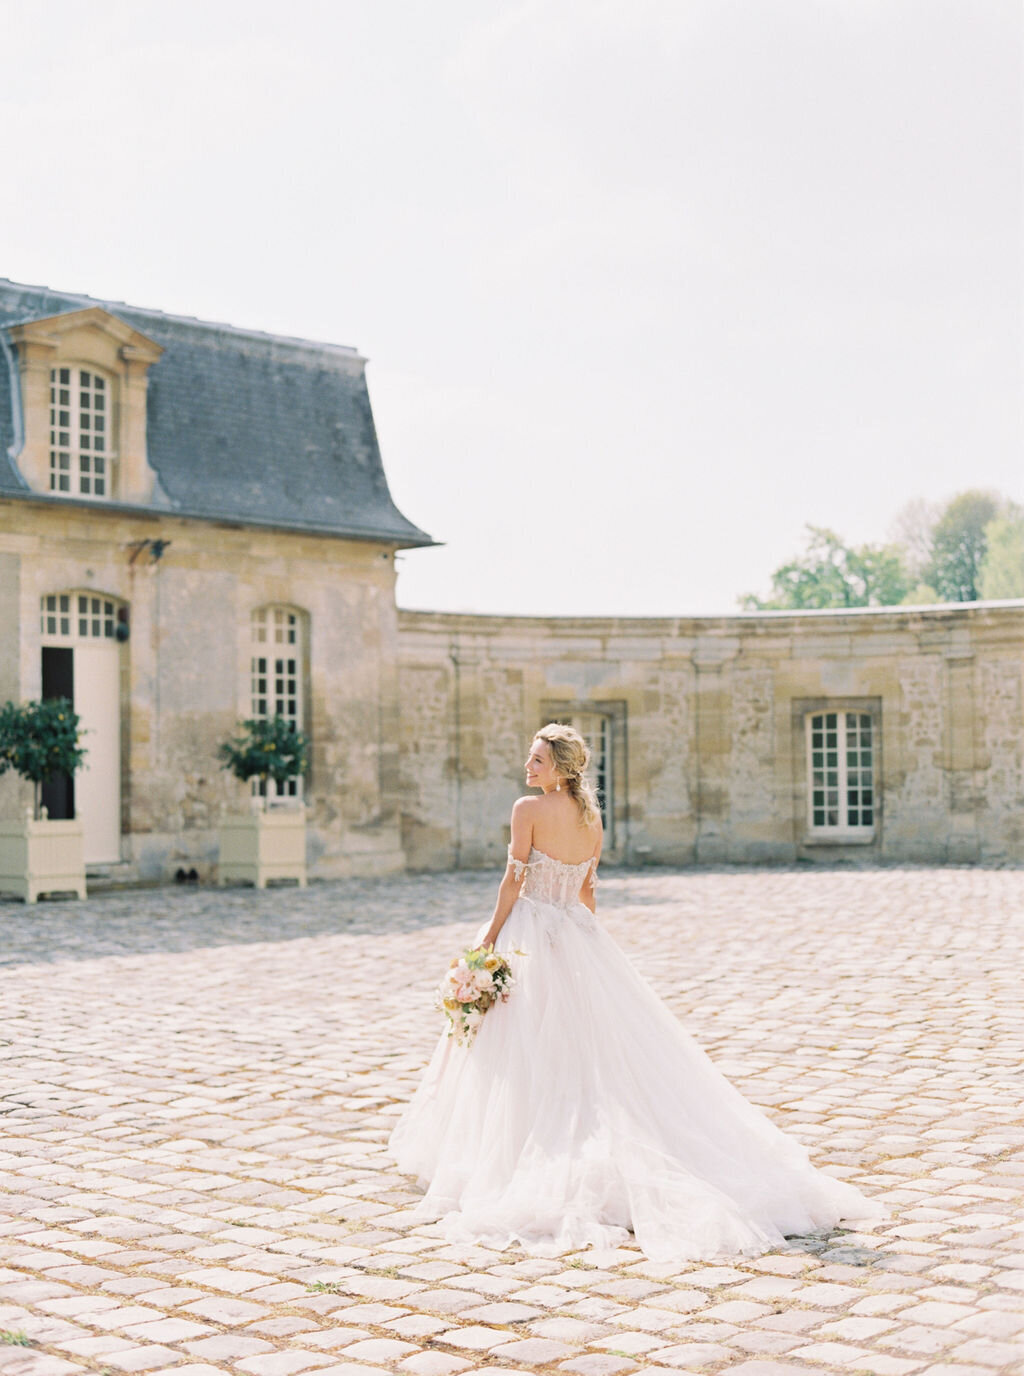 Chateau-de-Villette-wedding-Floraison28